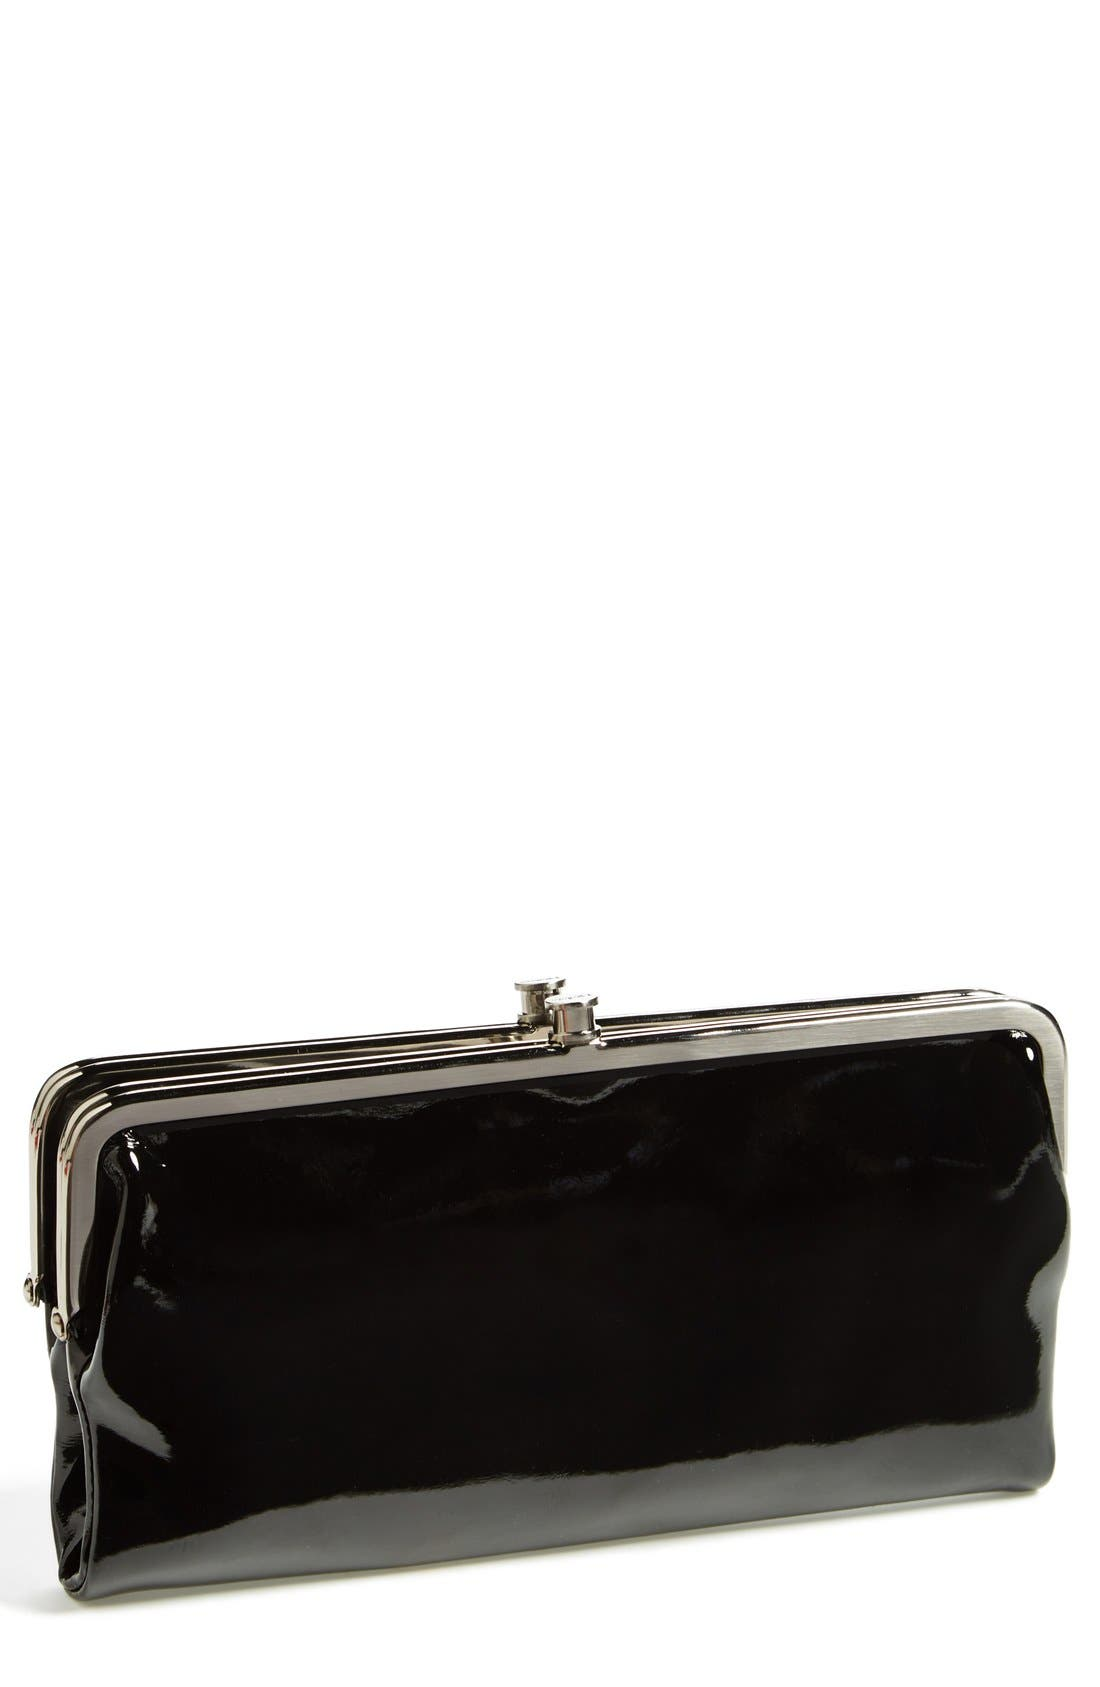 Alternate Image 1 Selected - Hobo 'Lauren' Double Frame Patent Leather Clutch